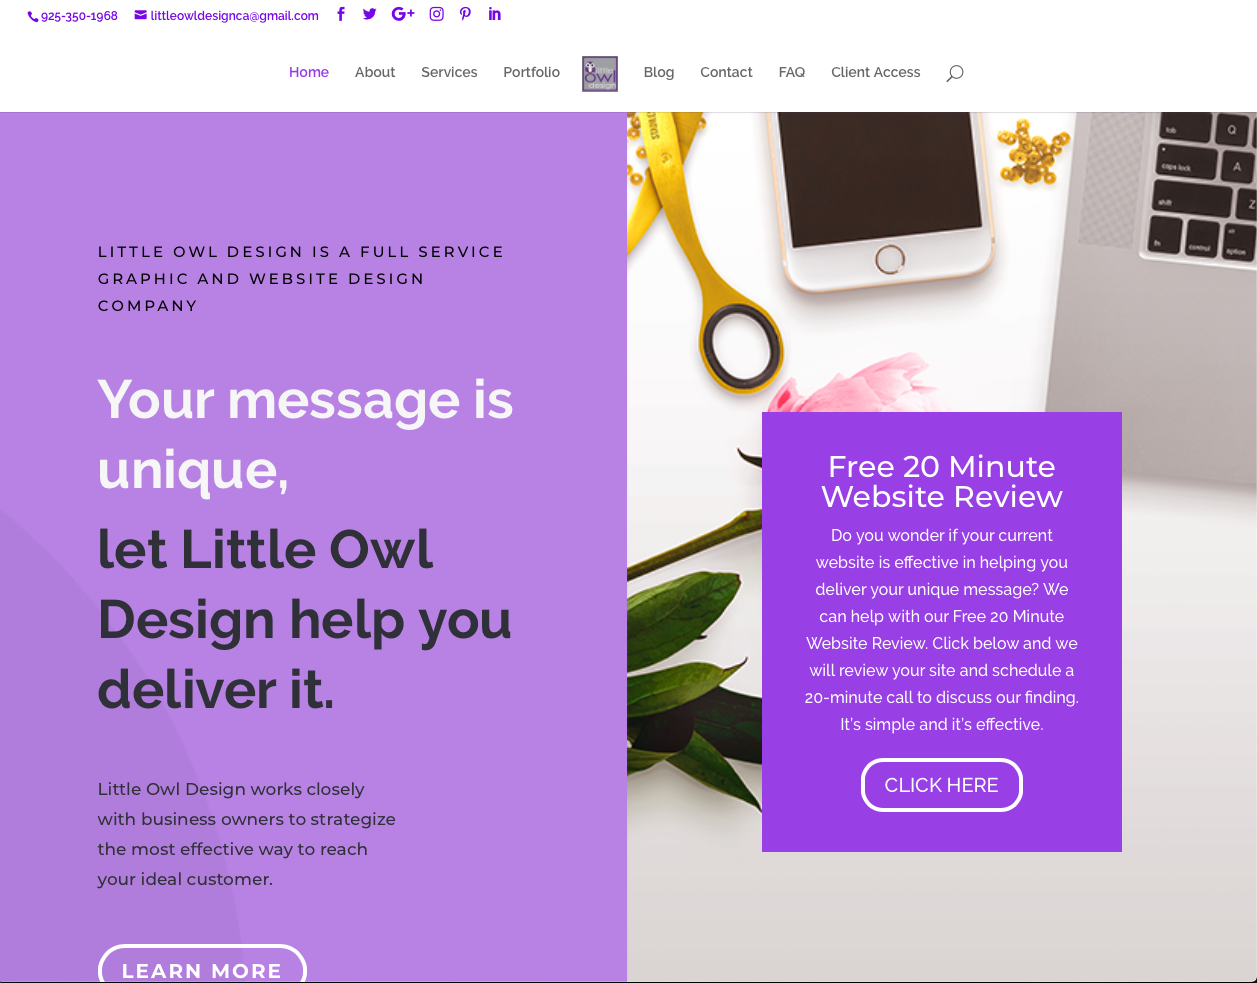 Little Owl Design Website home page screenshot